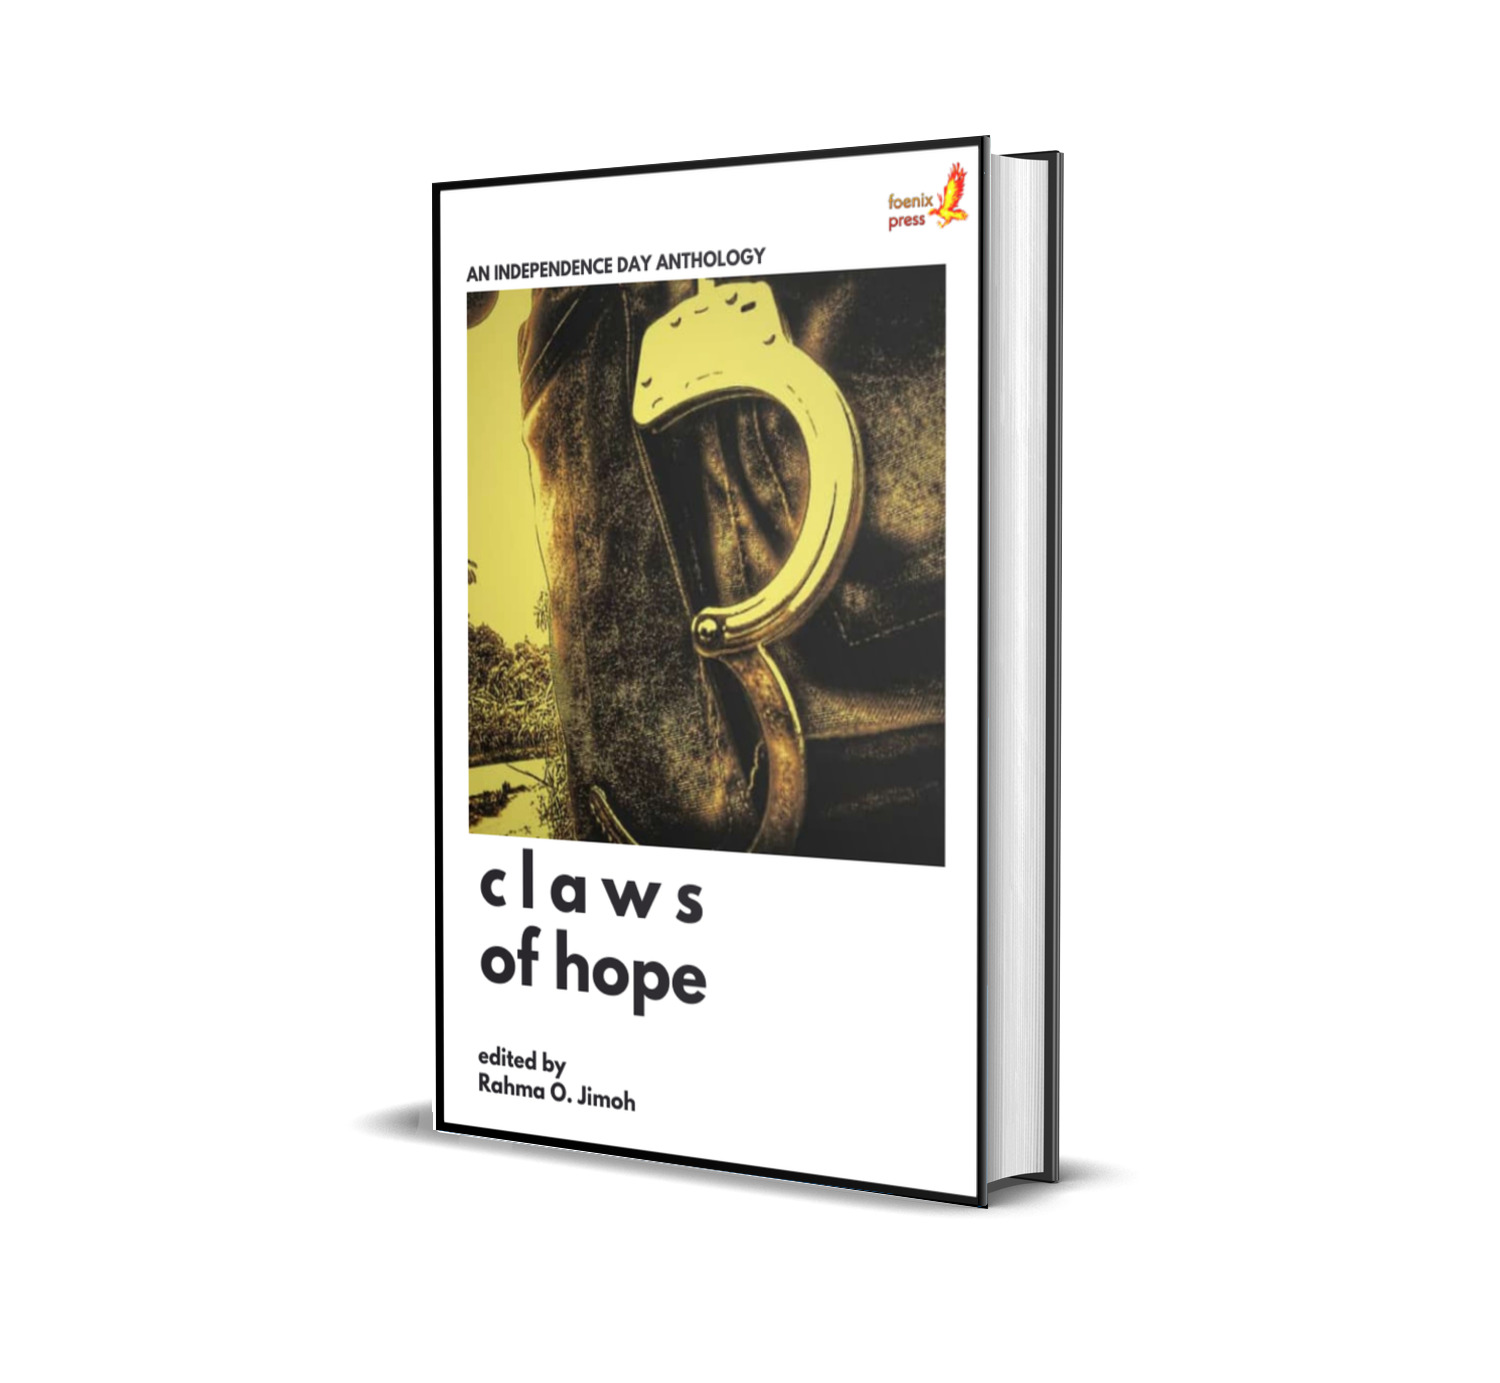 claws of hope